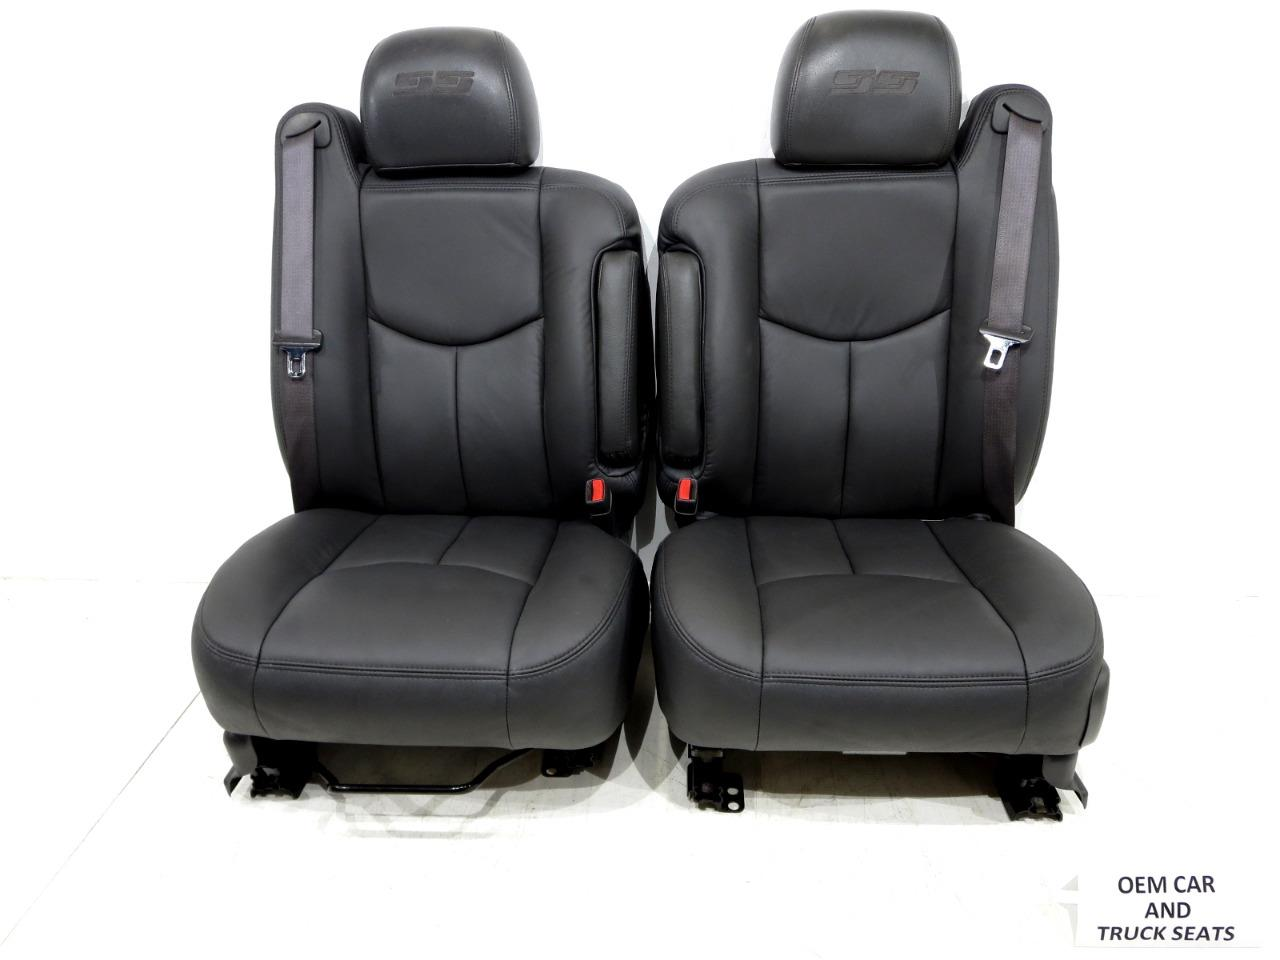 Jeep Wrangler Seat Covers Waterproof >> 2004 Chevy Silverado Oem Seat Covers - Velcromag